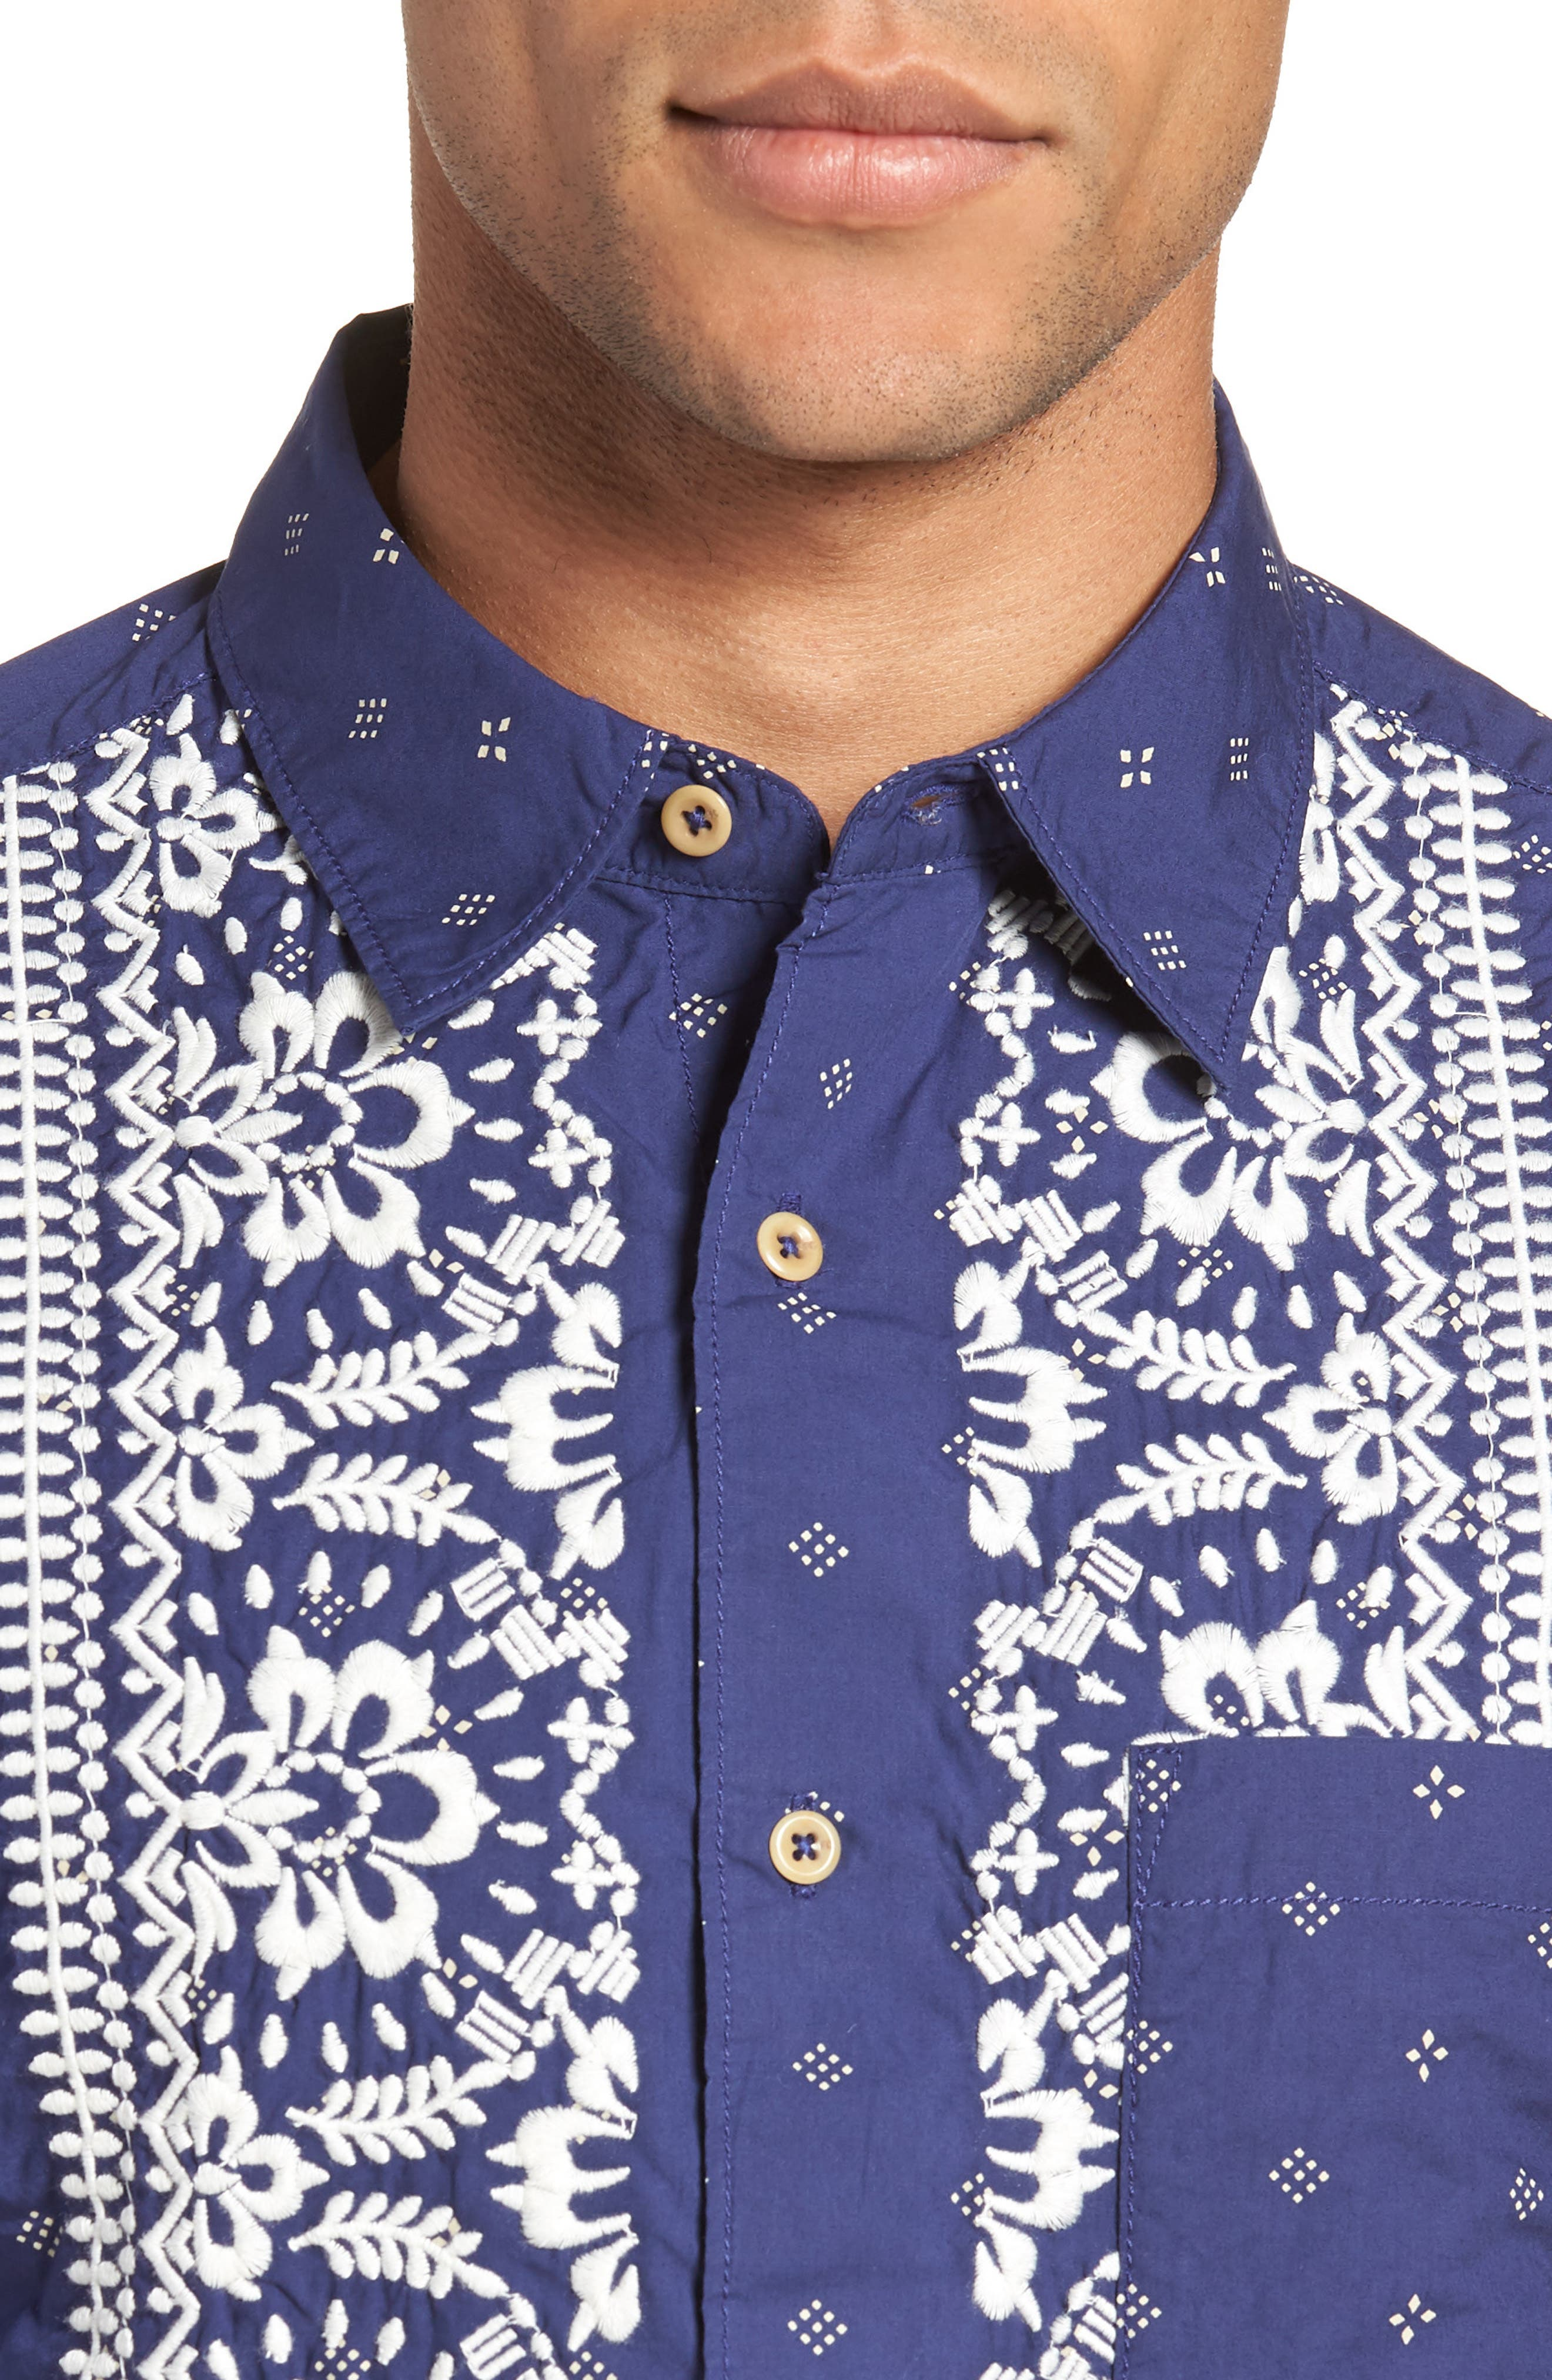 Iki Lawn Embroidered Shirt,                             Alternate thumbnail 4, color,                             PATRIOT BLUE TURTLE DOVE